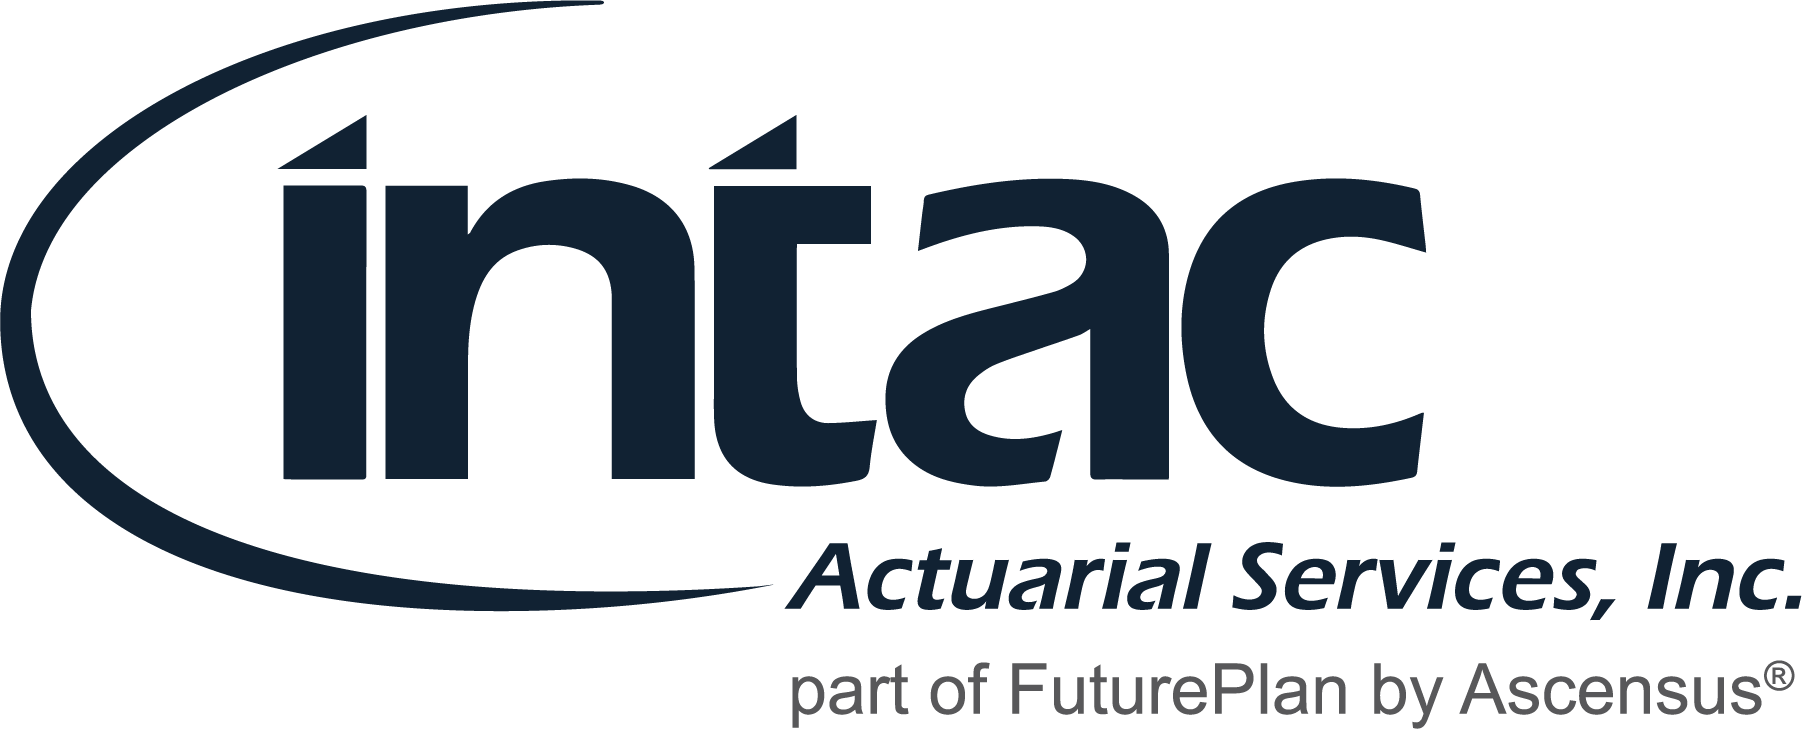 Intac Actuarial Services, Inc.